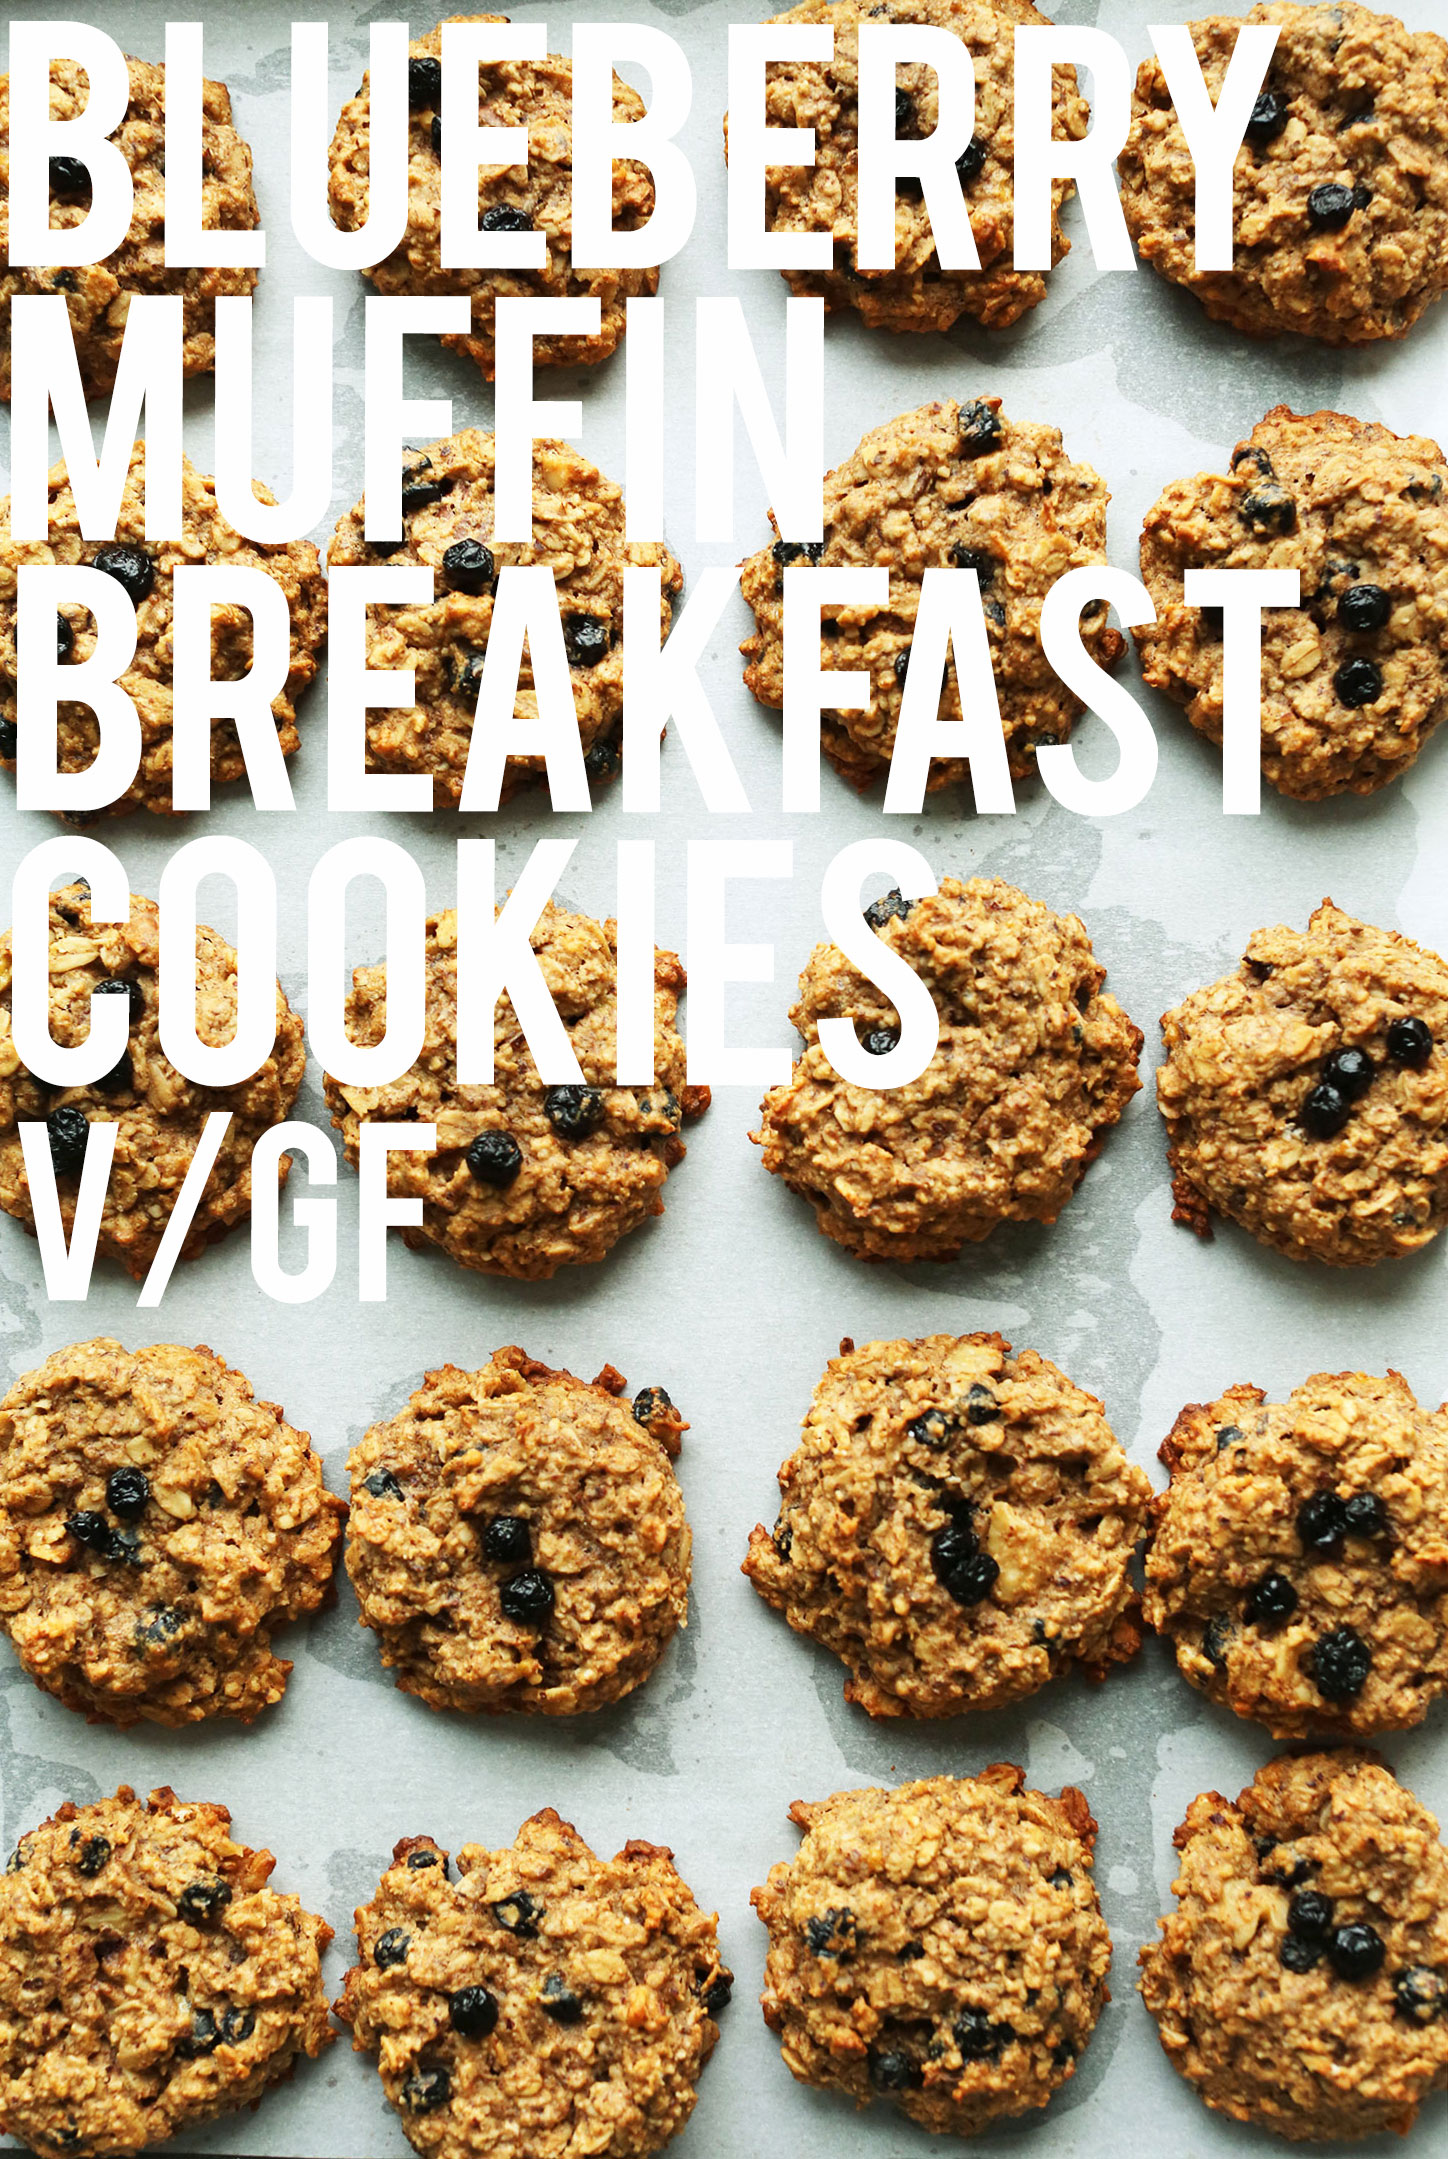 Baking sheet full of our gluten-free vegan Blueberry Muffin Breakfast Cookies recipe